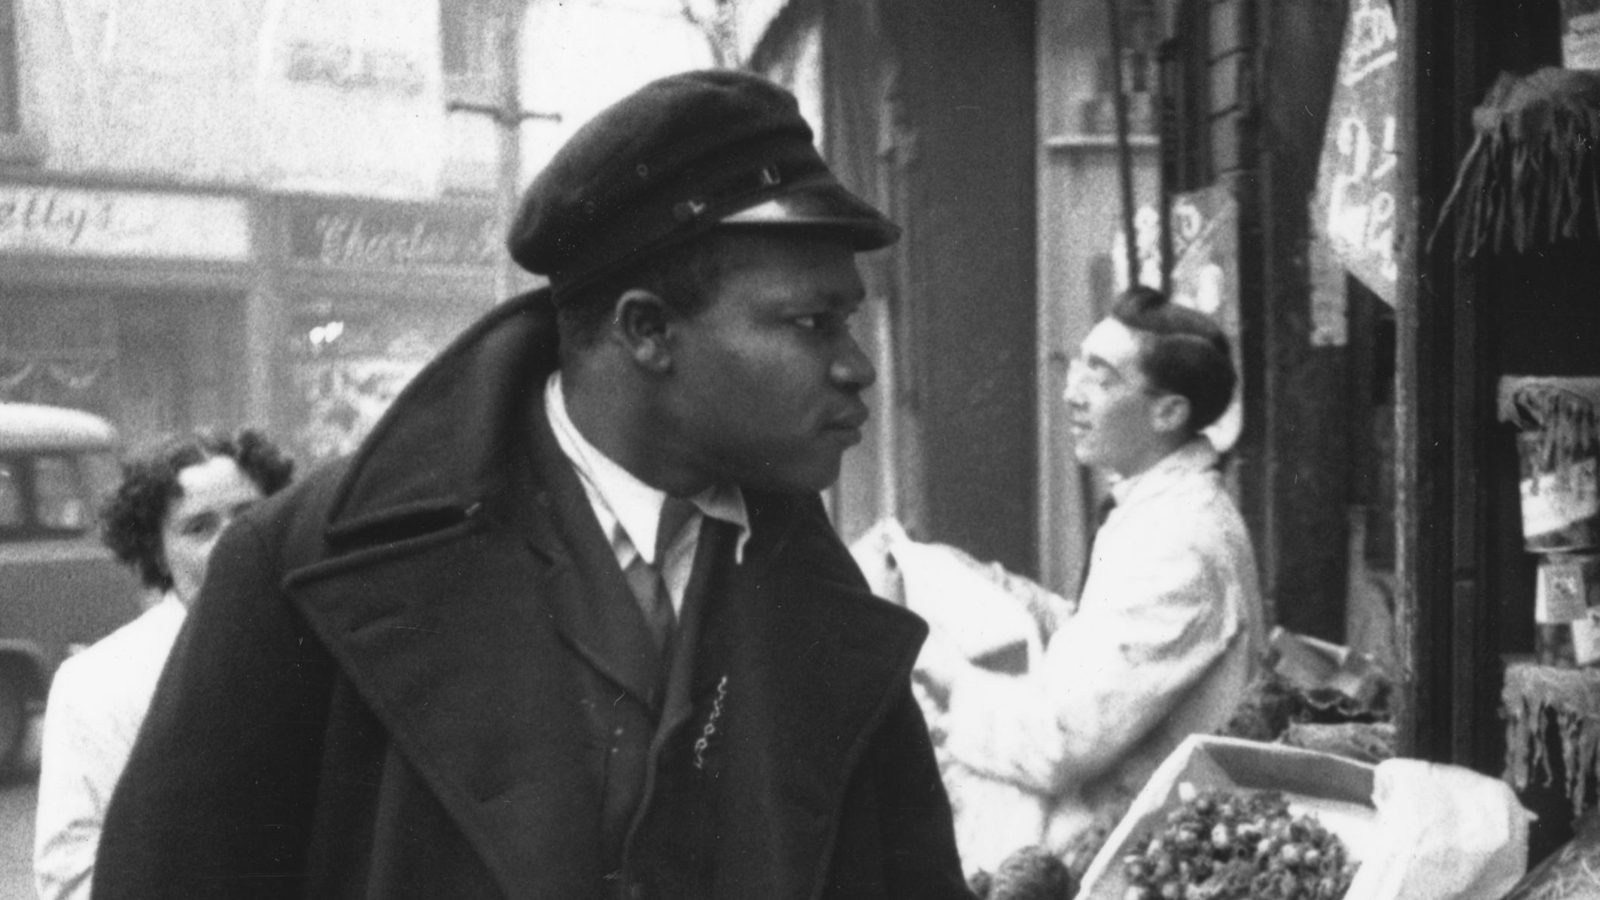 Black and white photograph of a Caribbean man in Britain